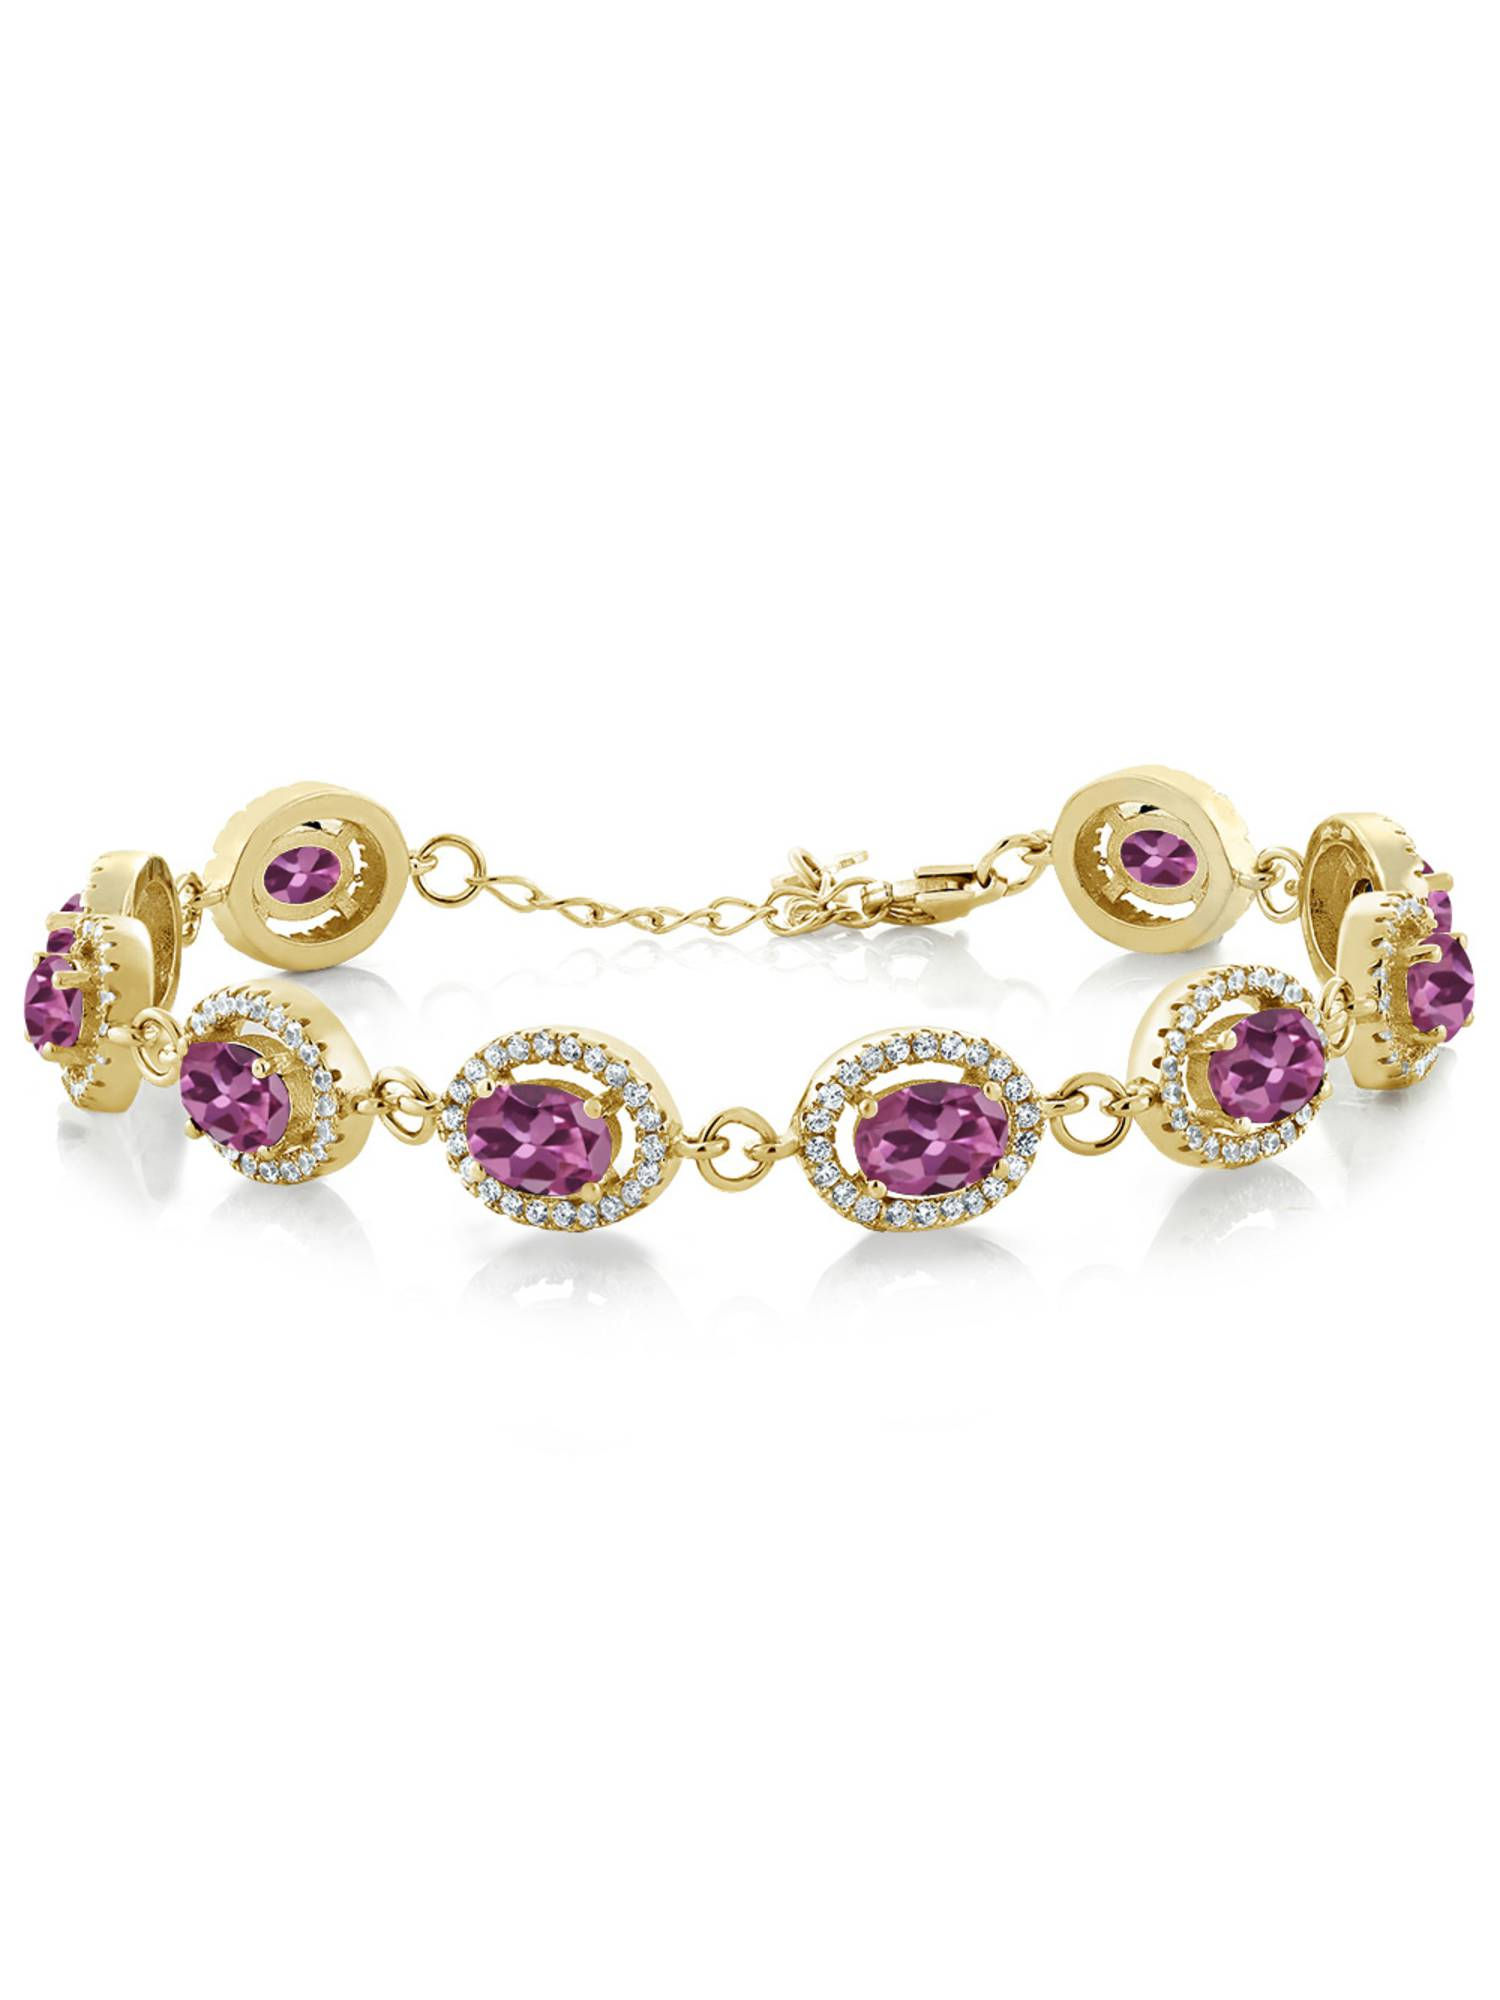 9.88 Ct Oval Pink Tourmaline AA 18K Yellow Gold Plated Silver Bracelet by